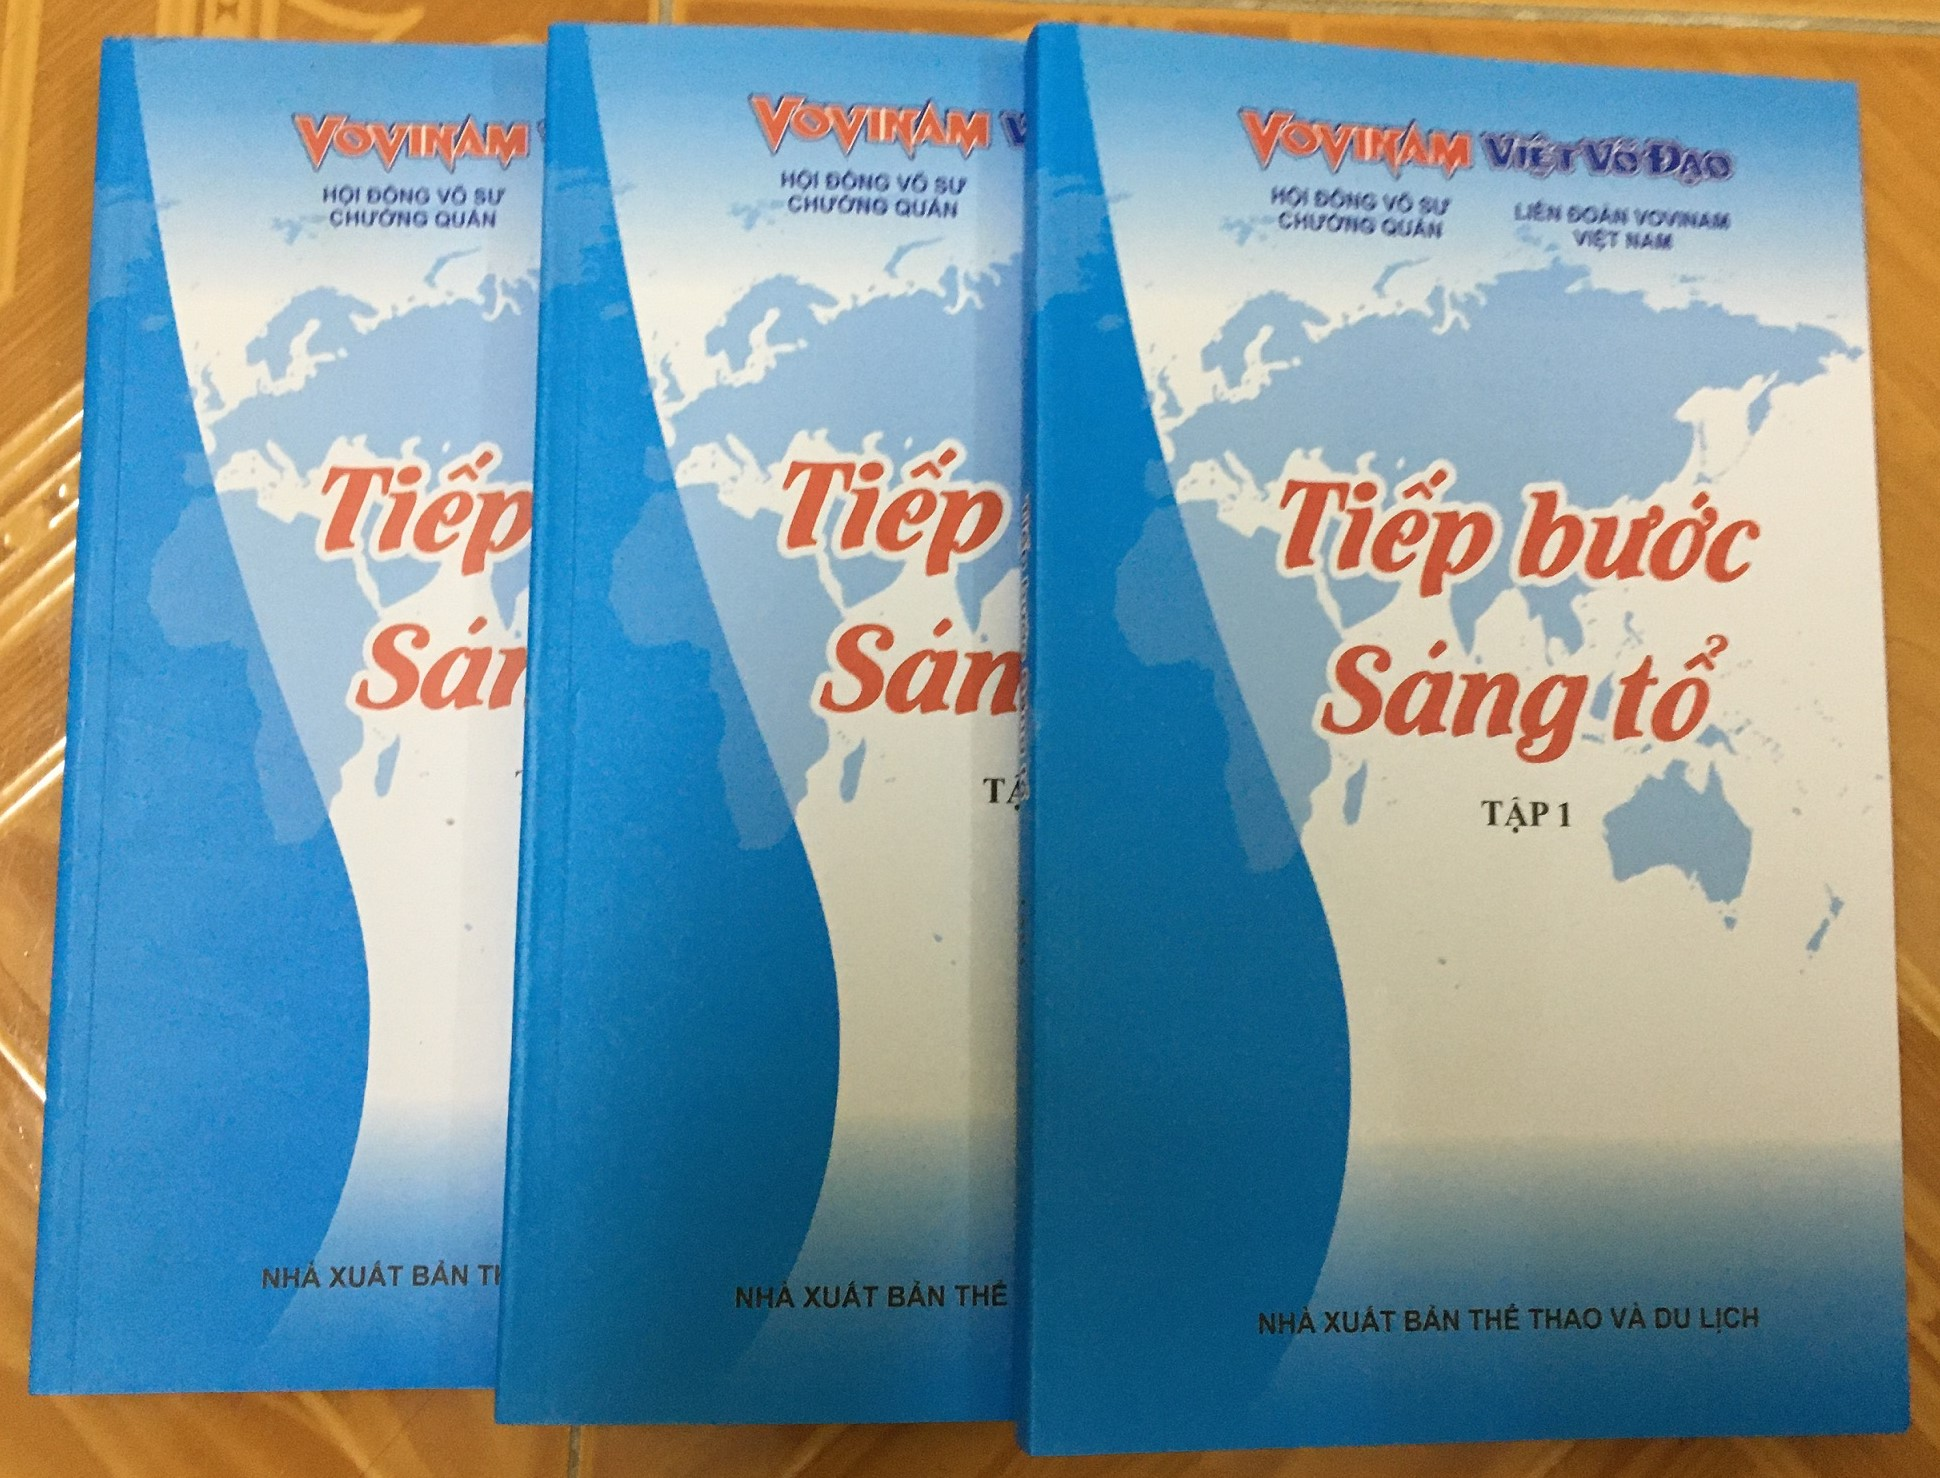 "SÁCH MỚI TẬP 1 ""TIẾP BƯỚC SÁNG TỔ"" - THE NEW EDITION 1 ""IN THE FOOTSTEPS OF THE FOUNDING MASTER""- NOUVELLE ÉDITION 1 ""SUR LES TRACES DU MAITRE FONDATEUR""."